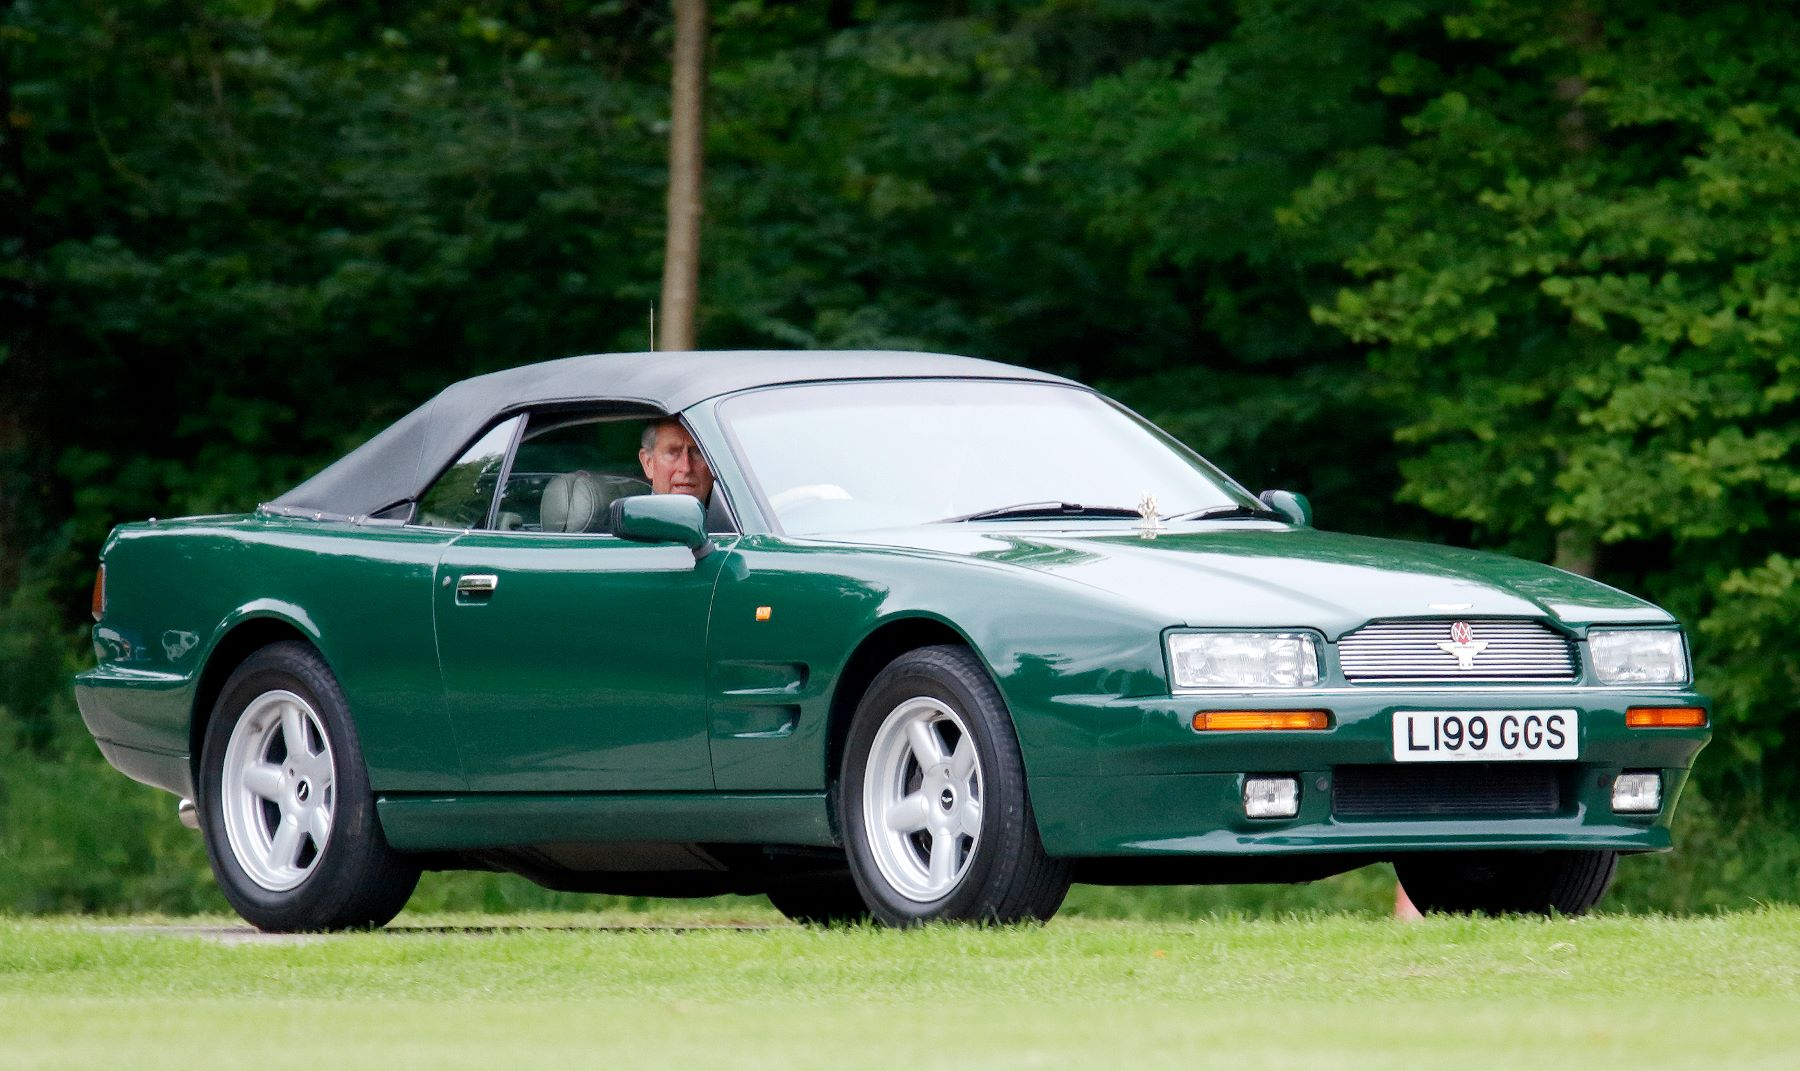 An Aston Martin Virage Volante model being driven by Prince Charles